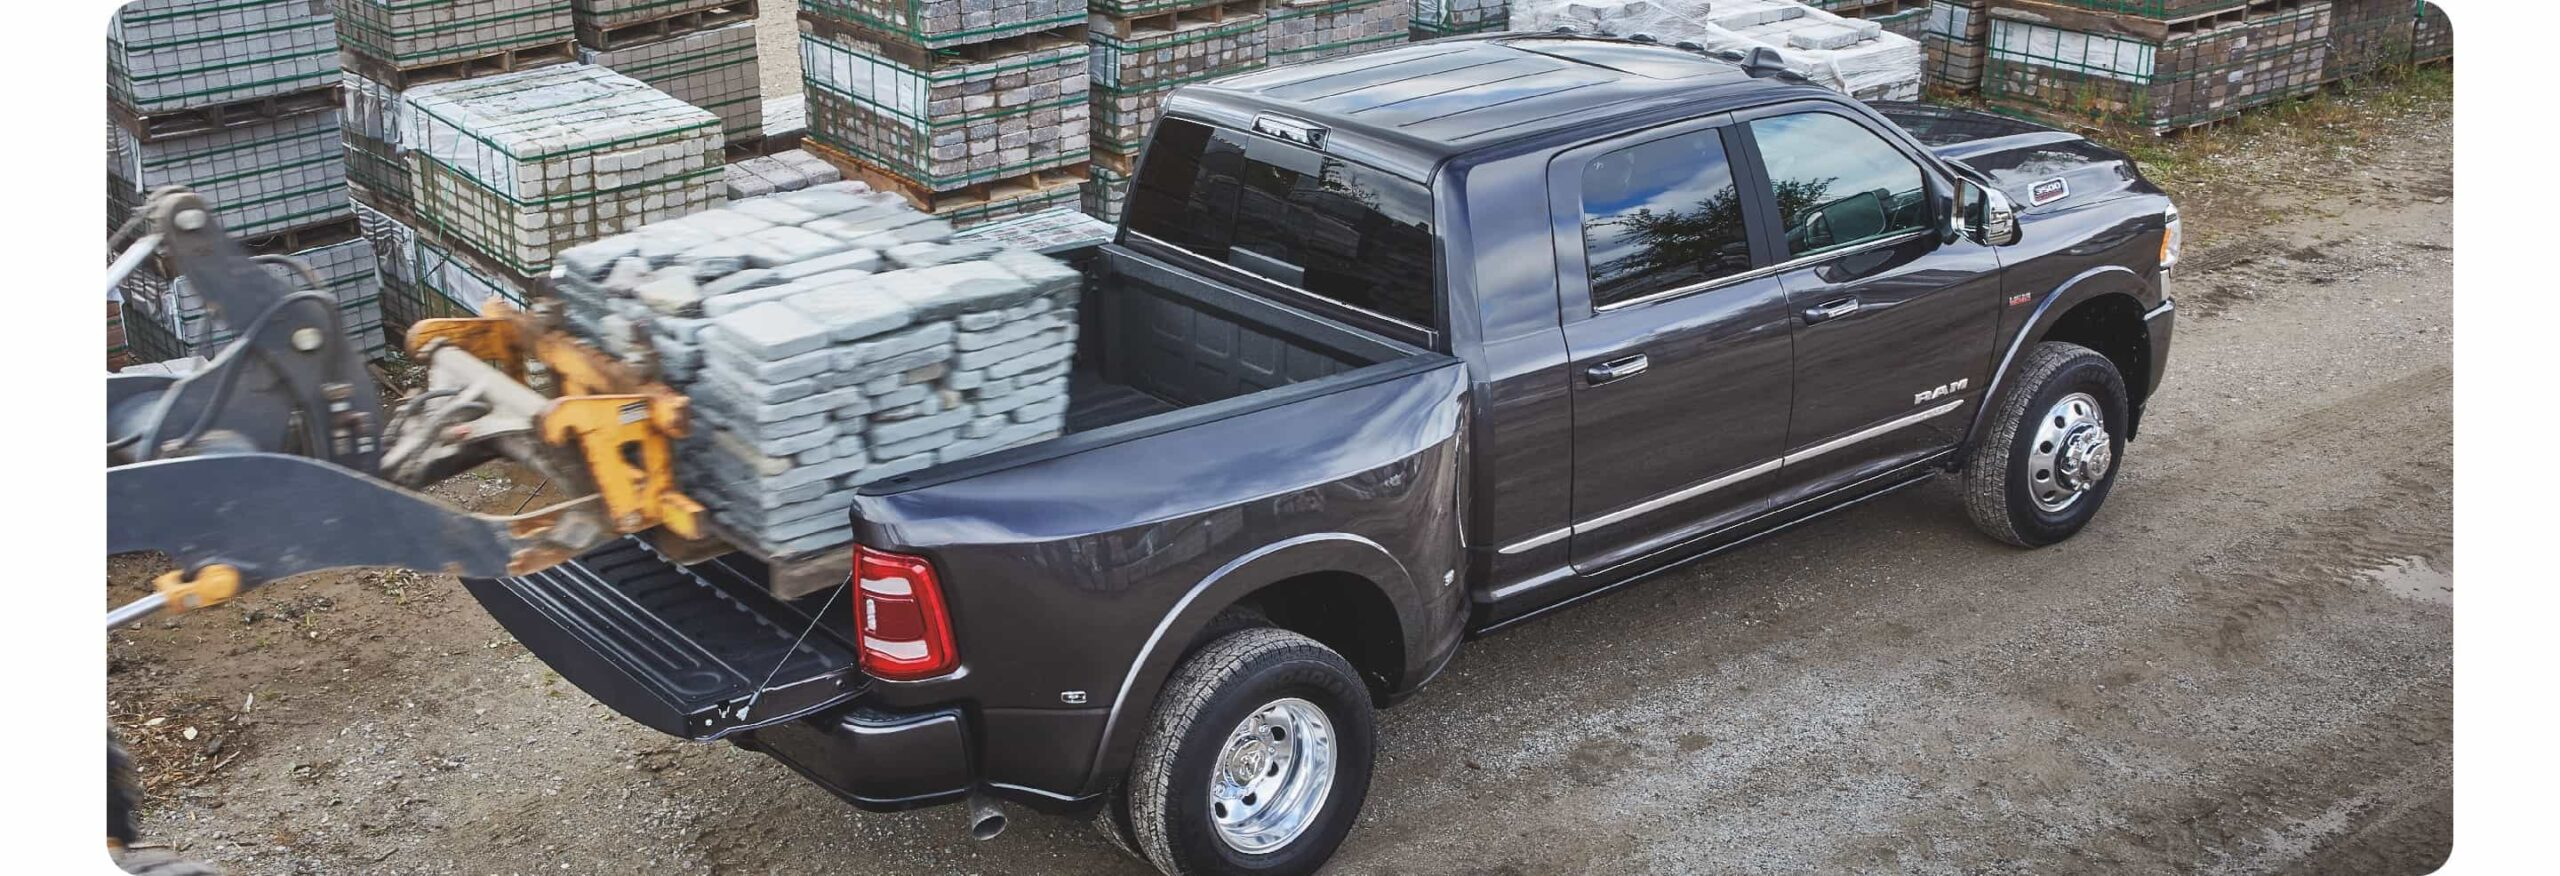 New Ram 3500 Becomes the Class Leader In Towing and Torque_image